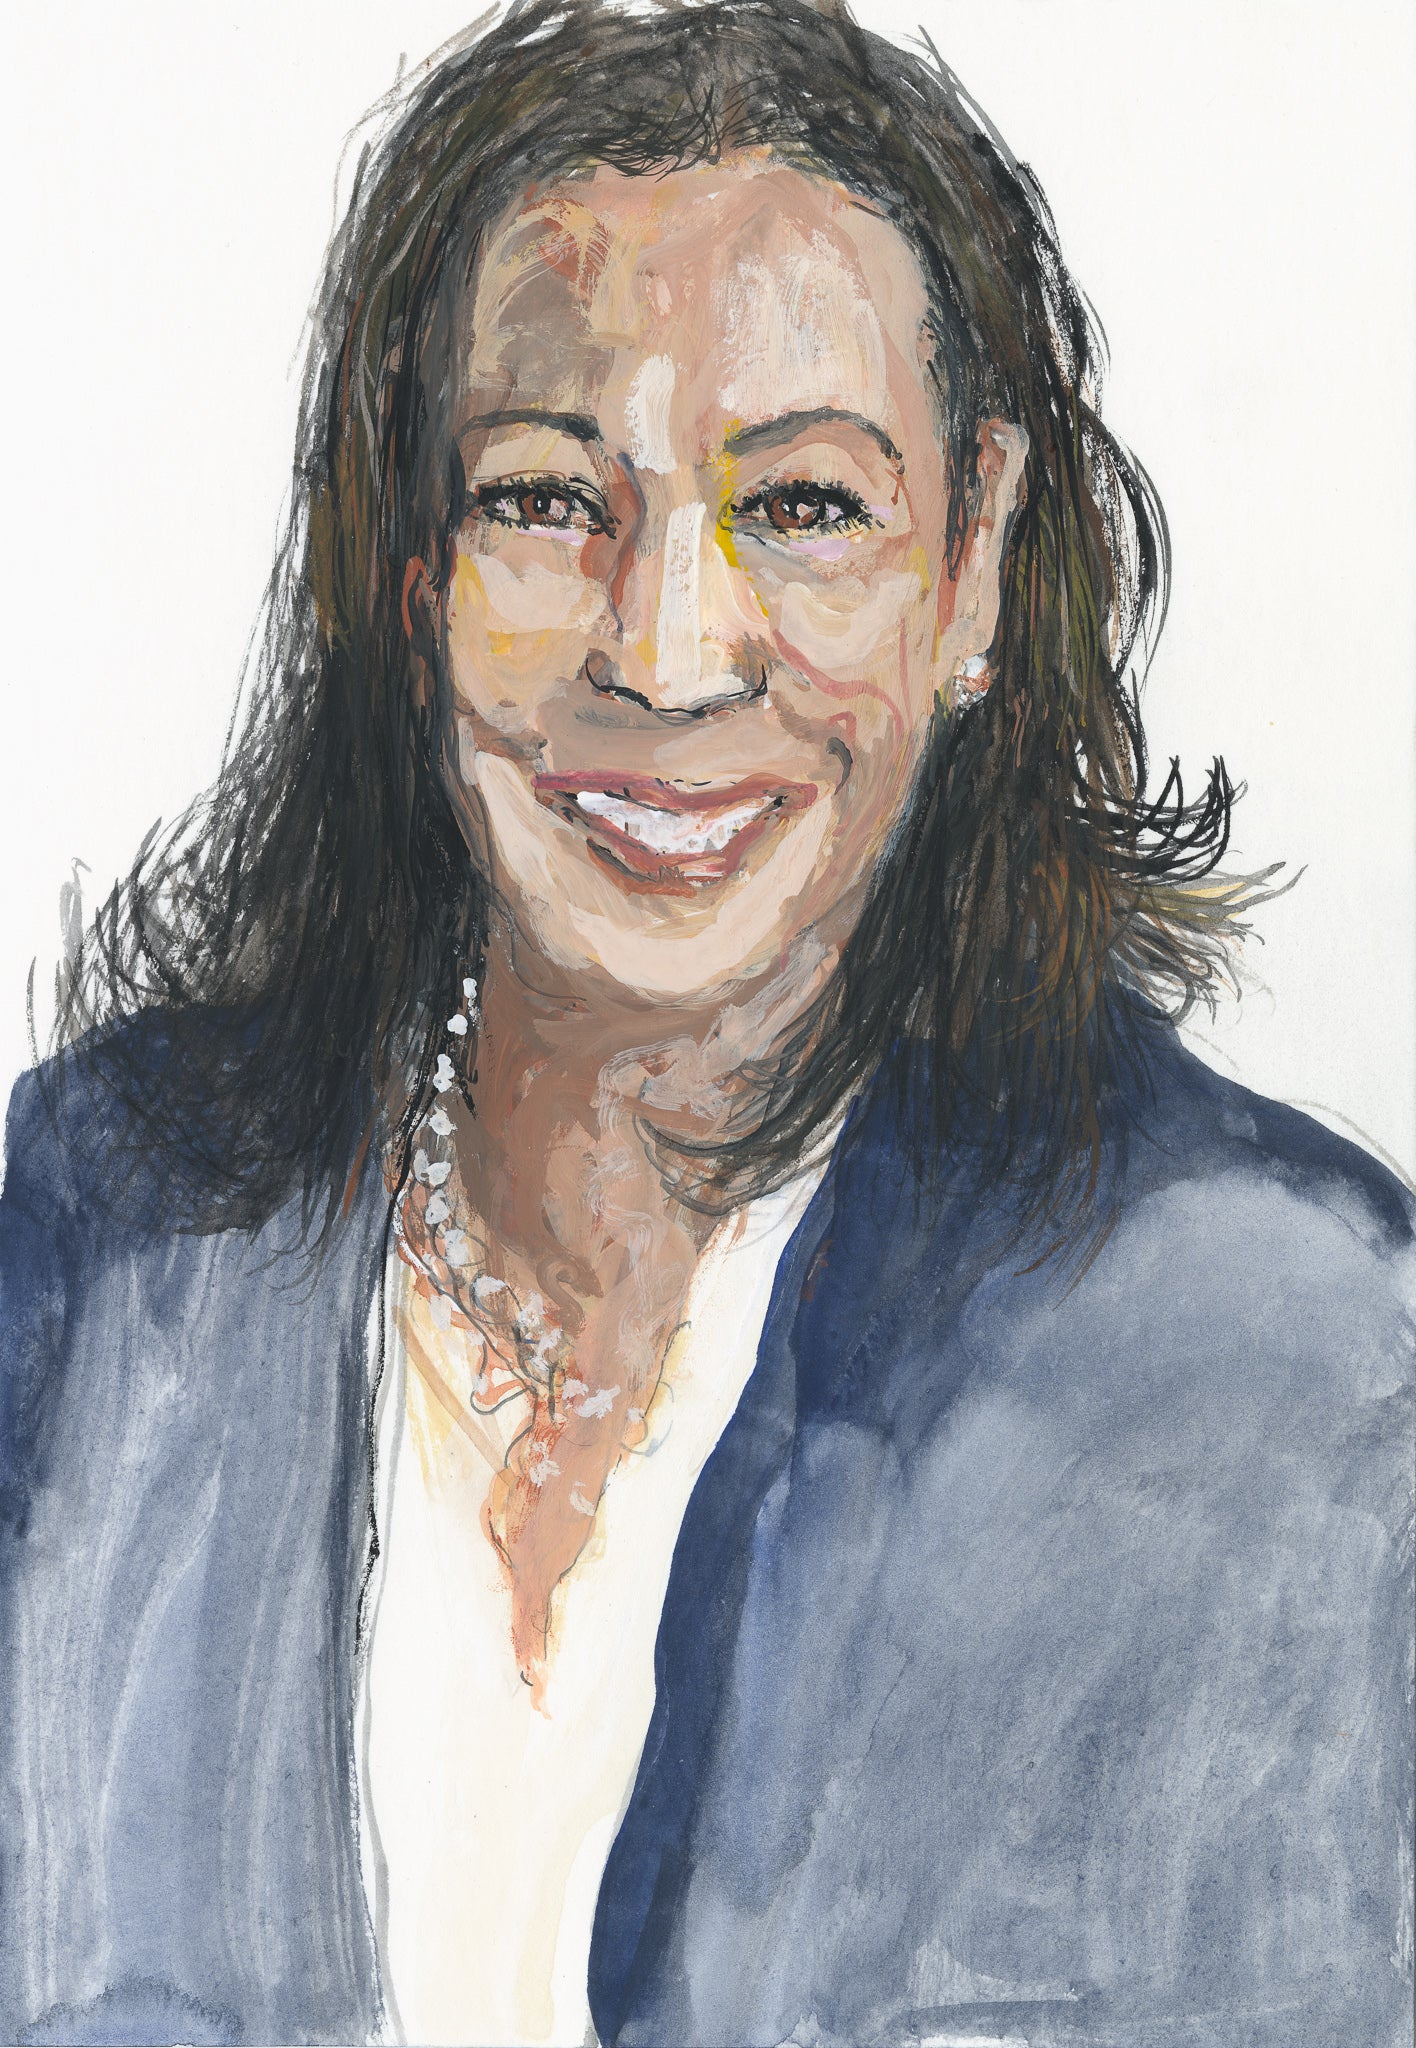 Portrait of Vice-President Kamala Harris - Study 1